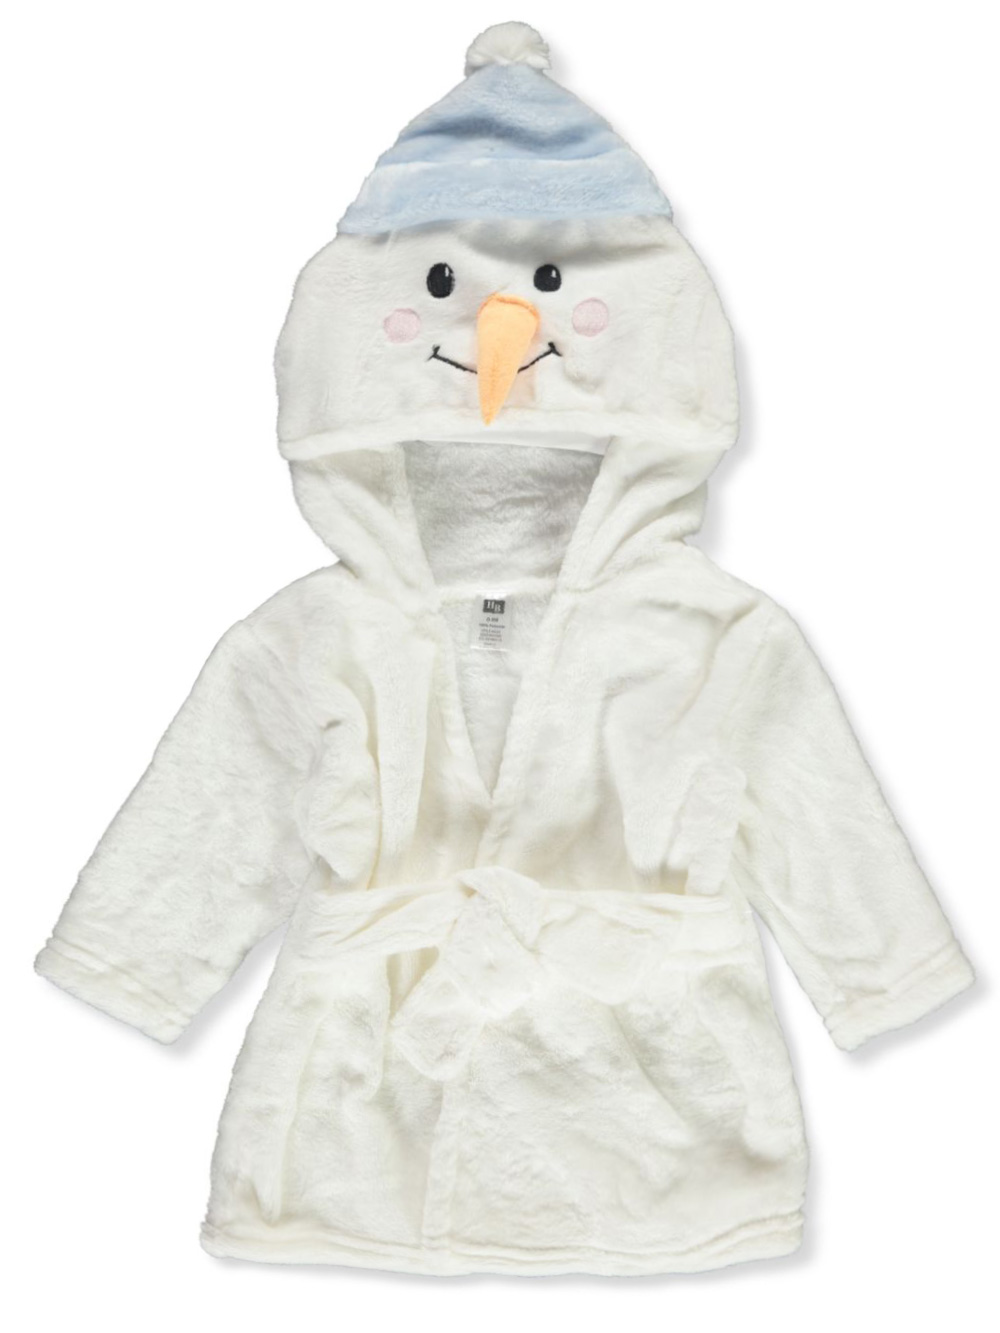 Pajamas Plush Hooded Bathrobe